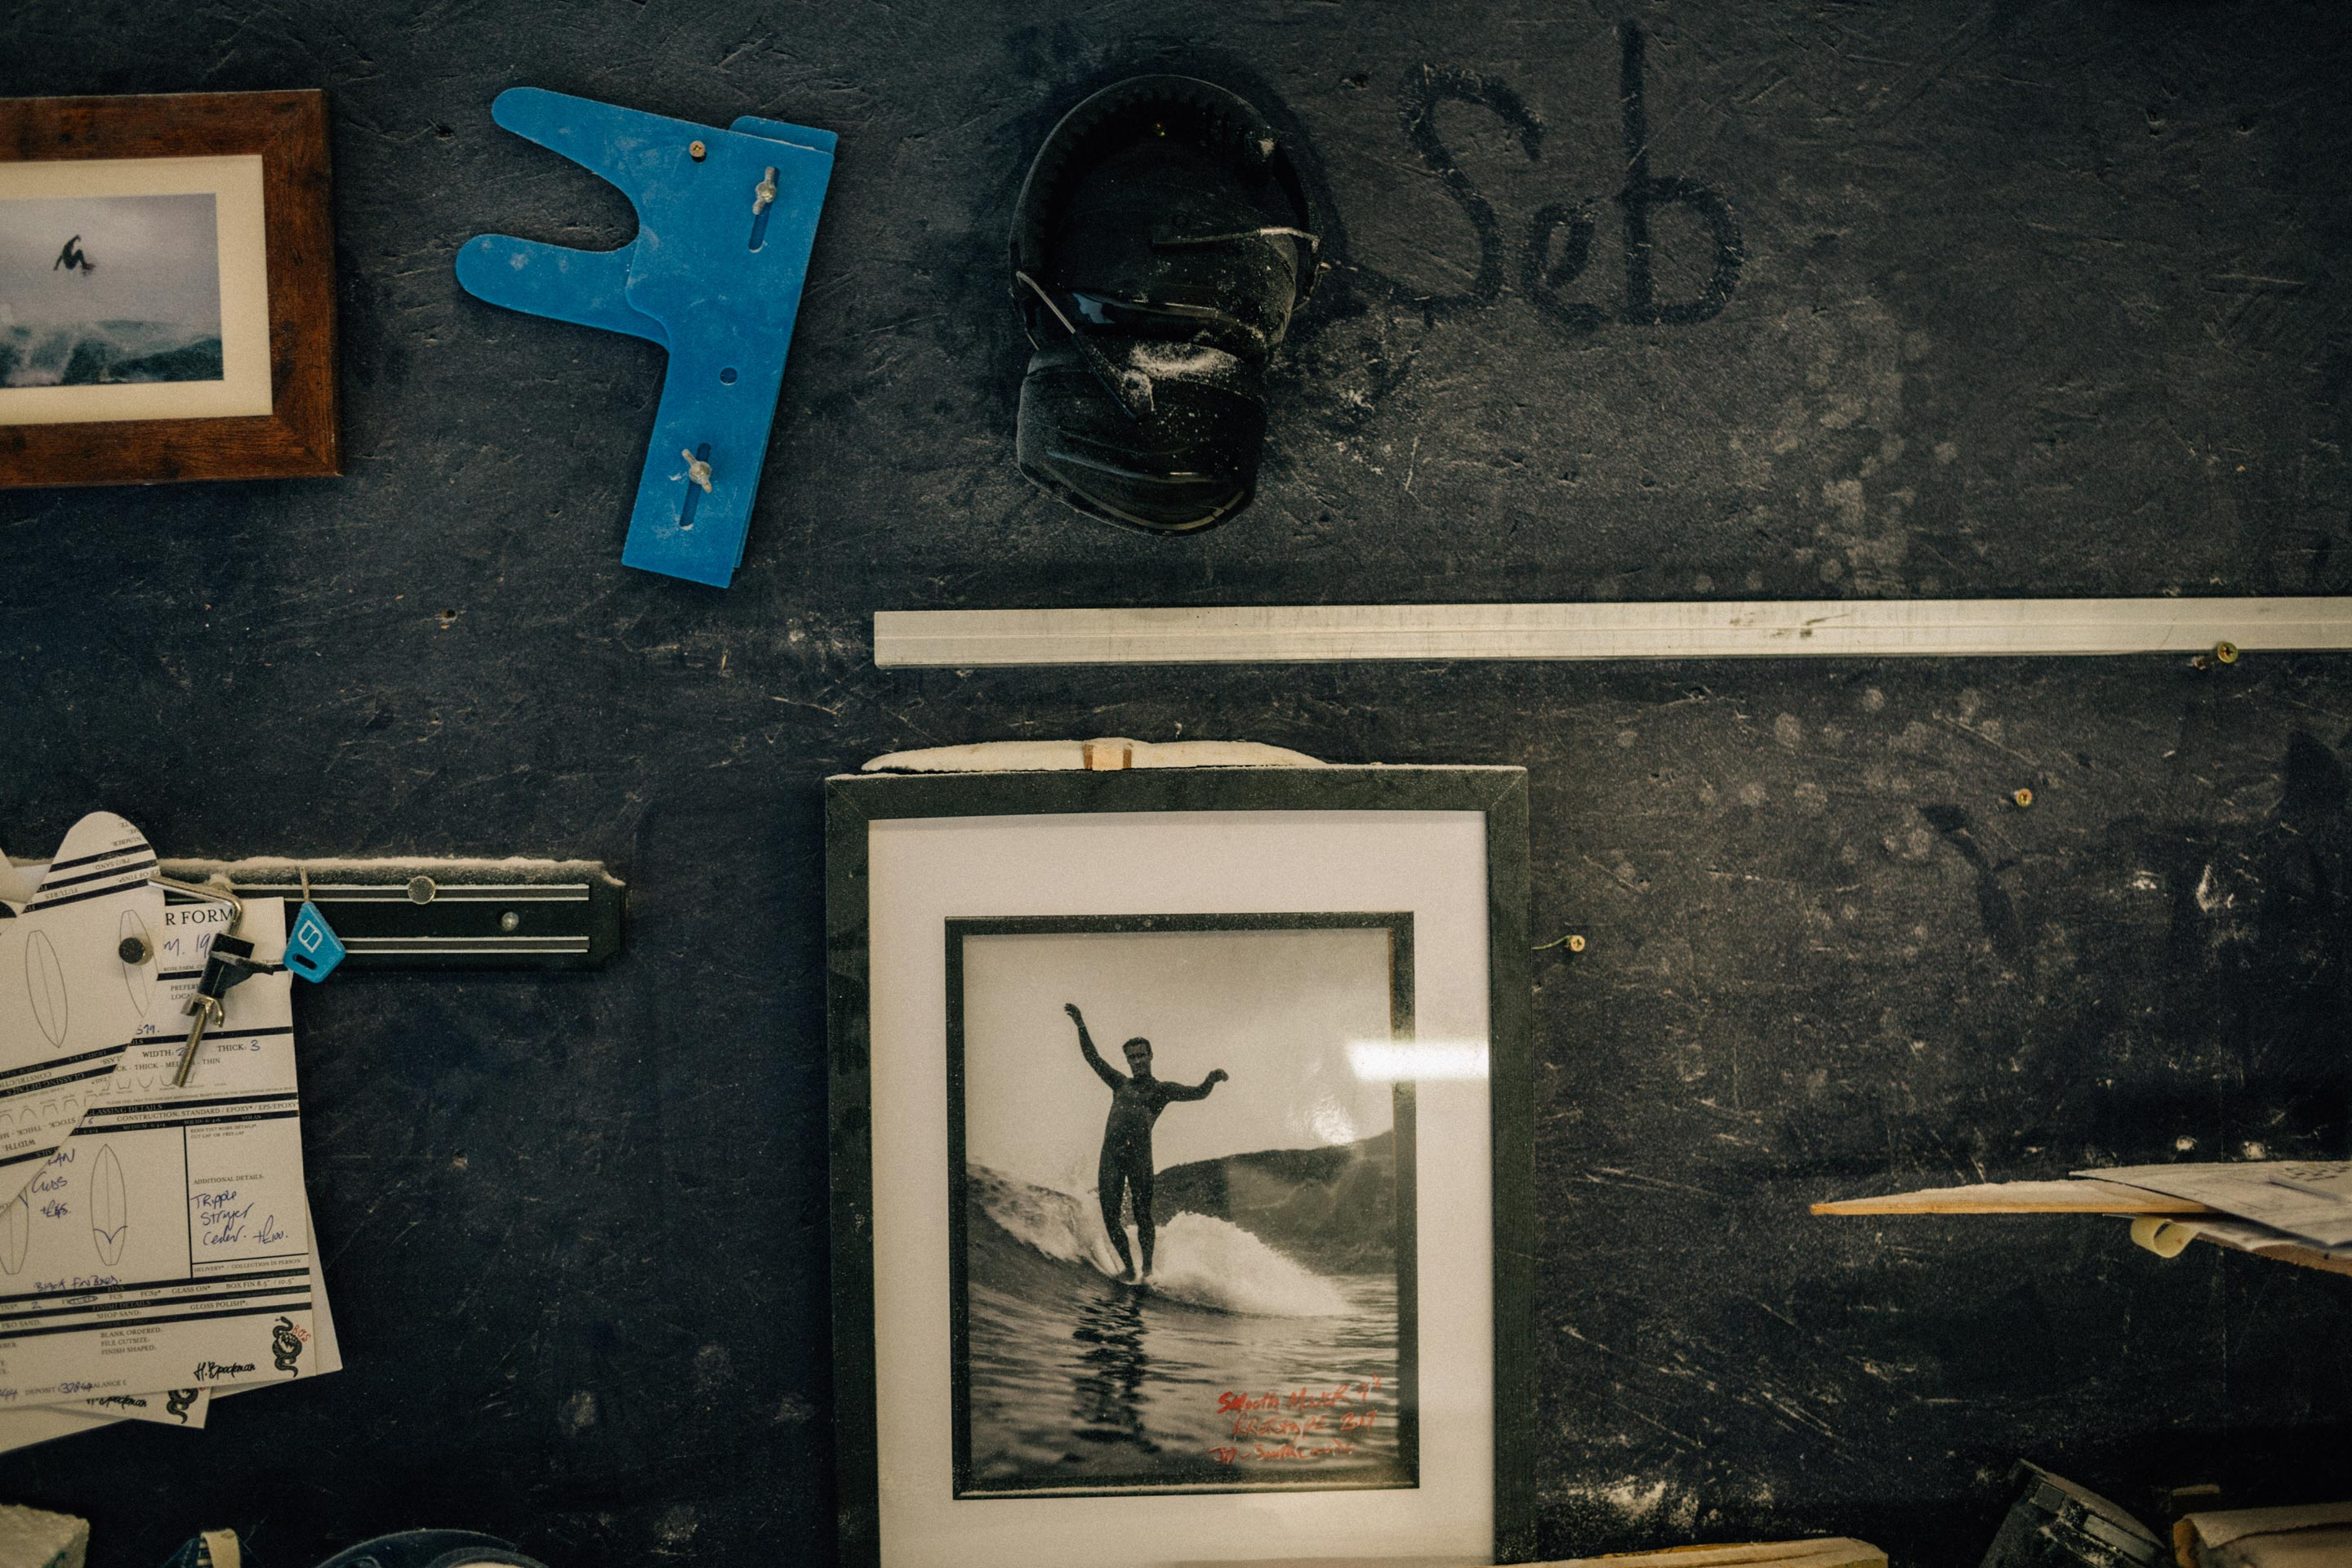 Vans + Finisterre editorial - Assorted shaping tools in James workshop and a framed picture of Josh Daniels founder of Smooth Movers competition